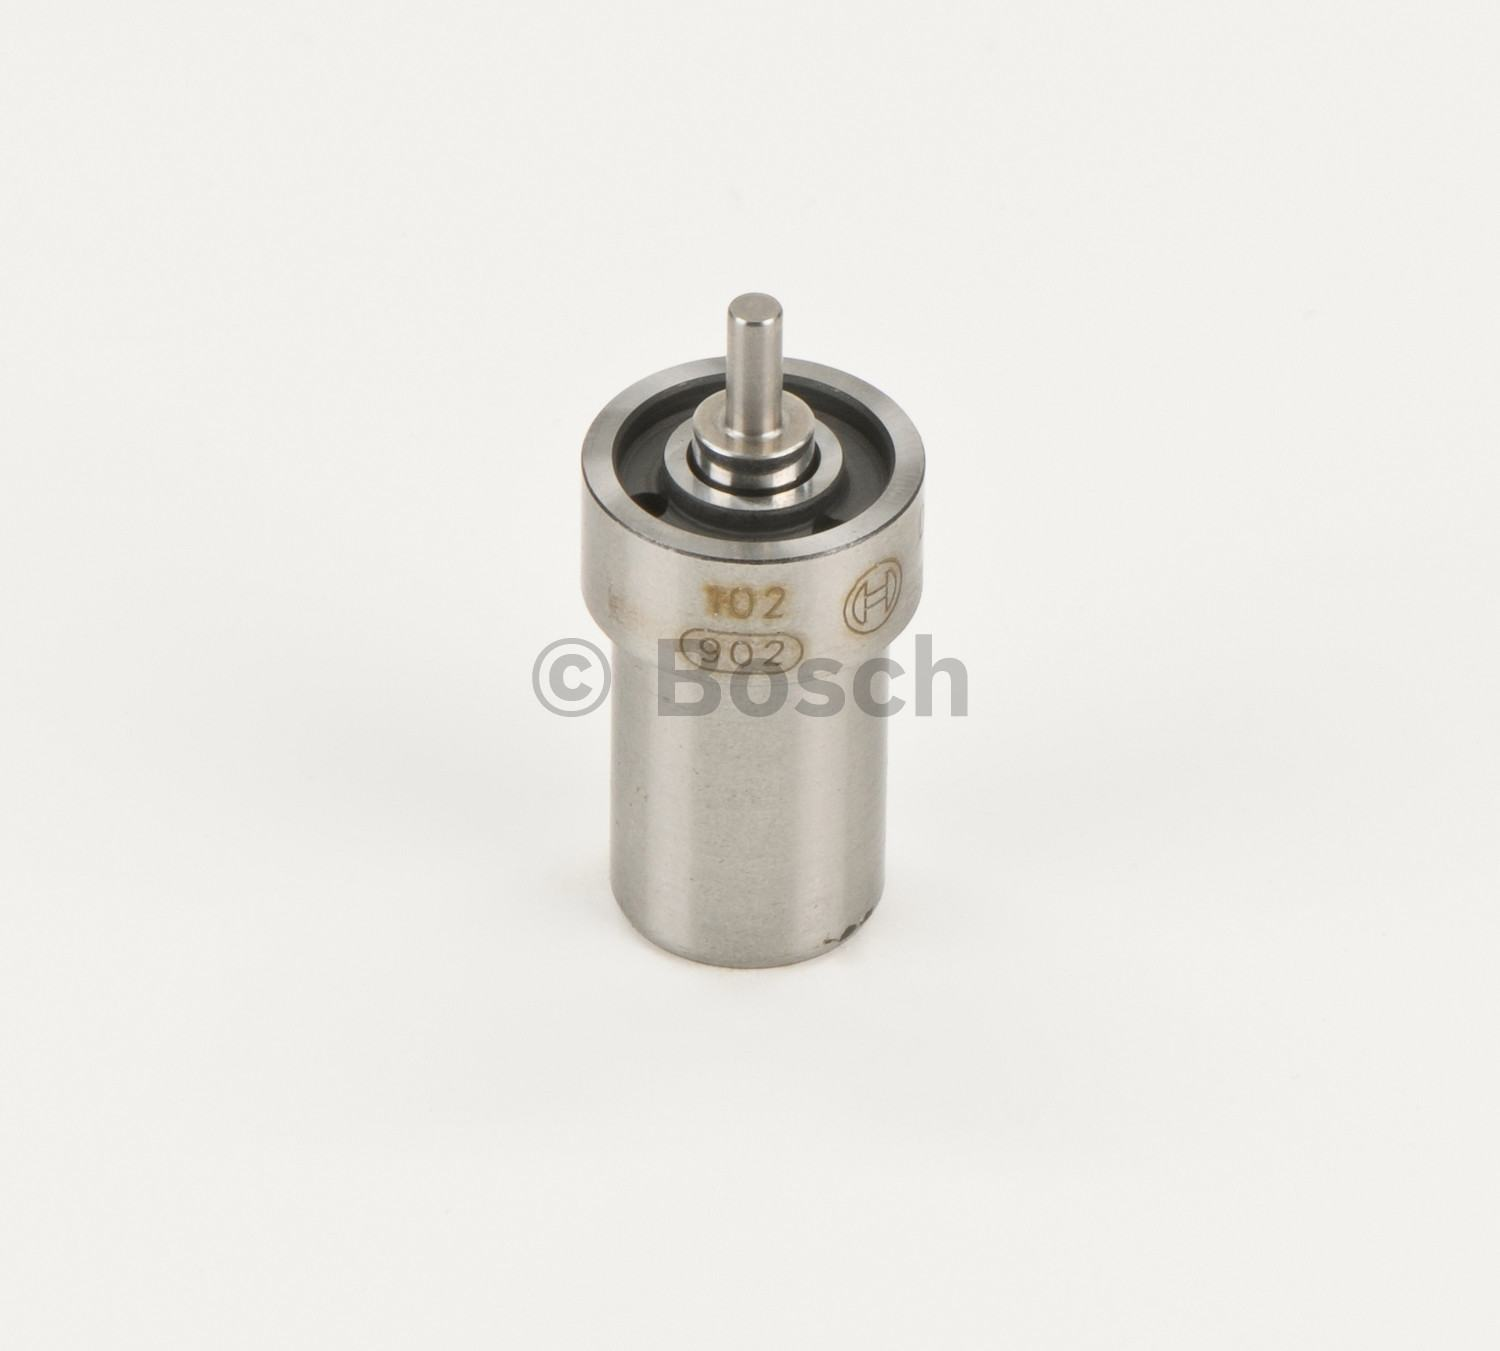 BOSCH - To 7/85 - BOS 0434250110